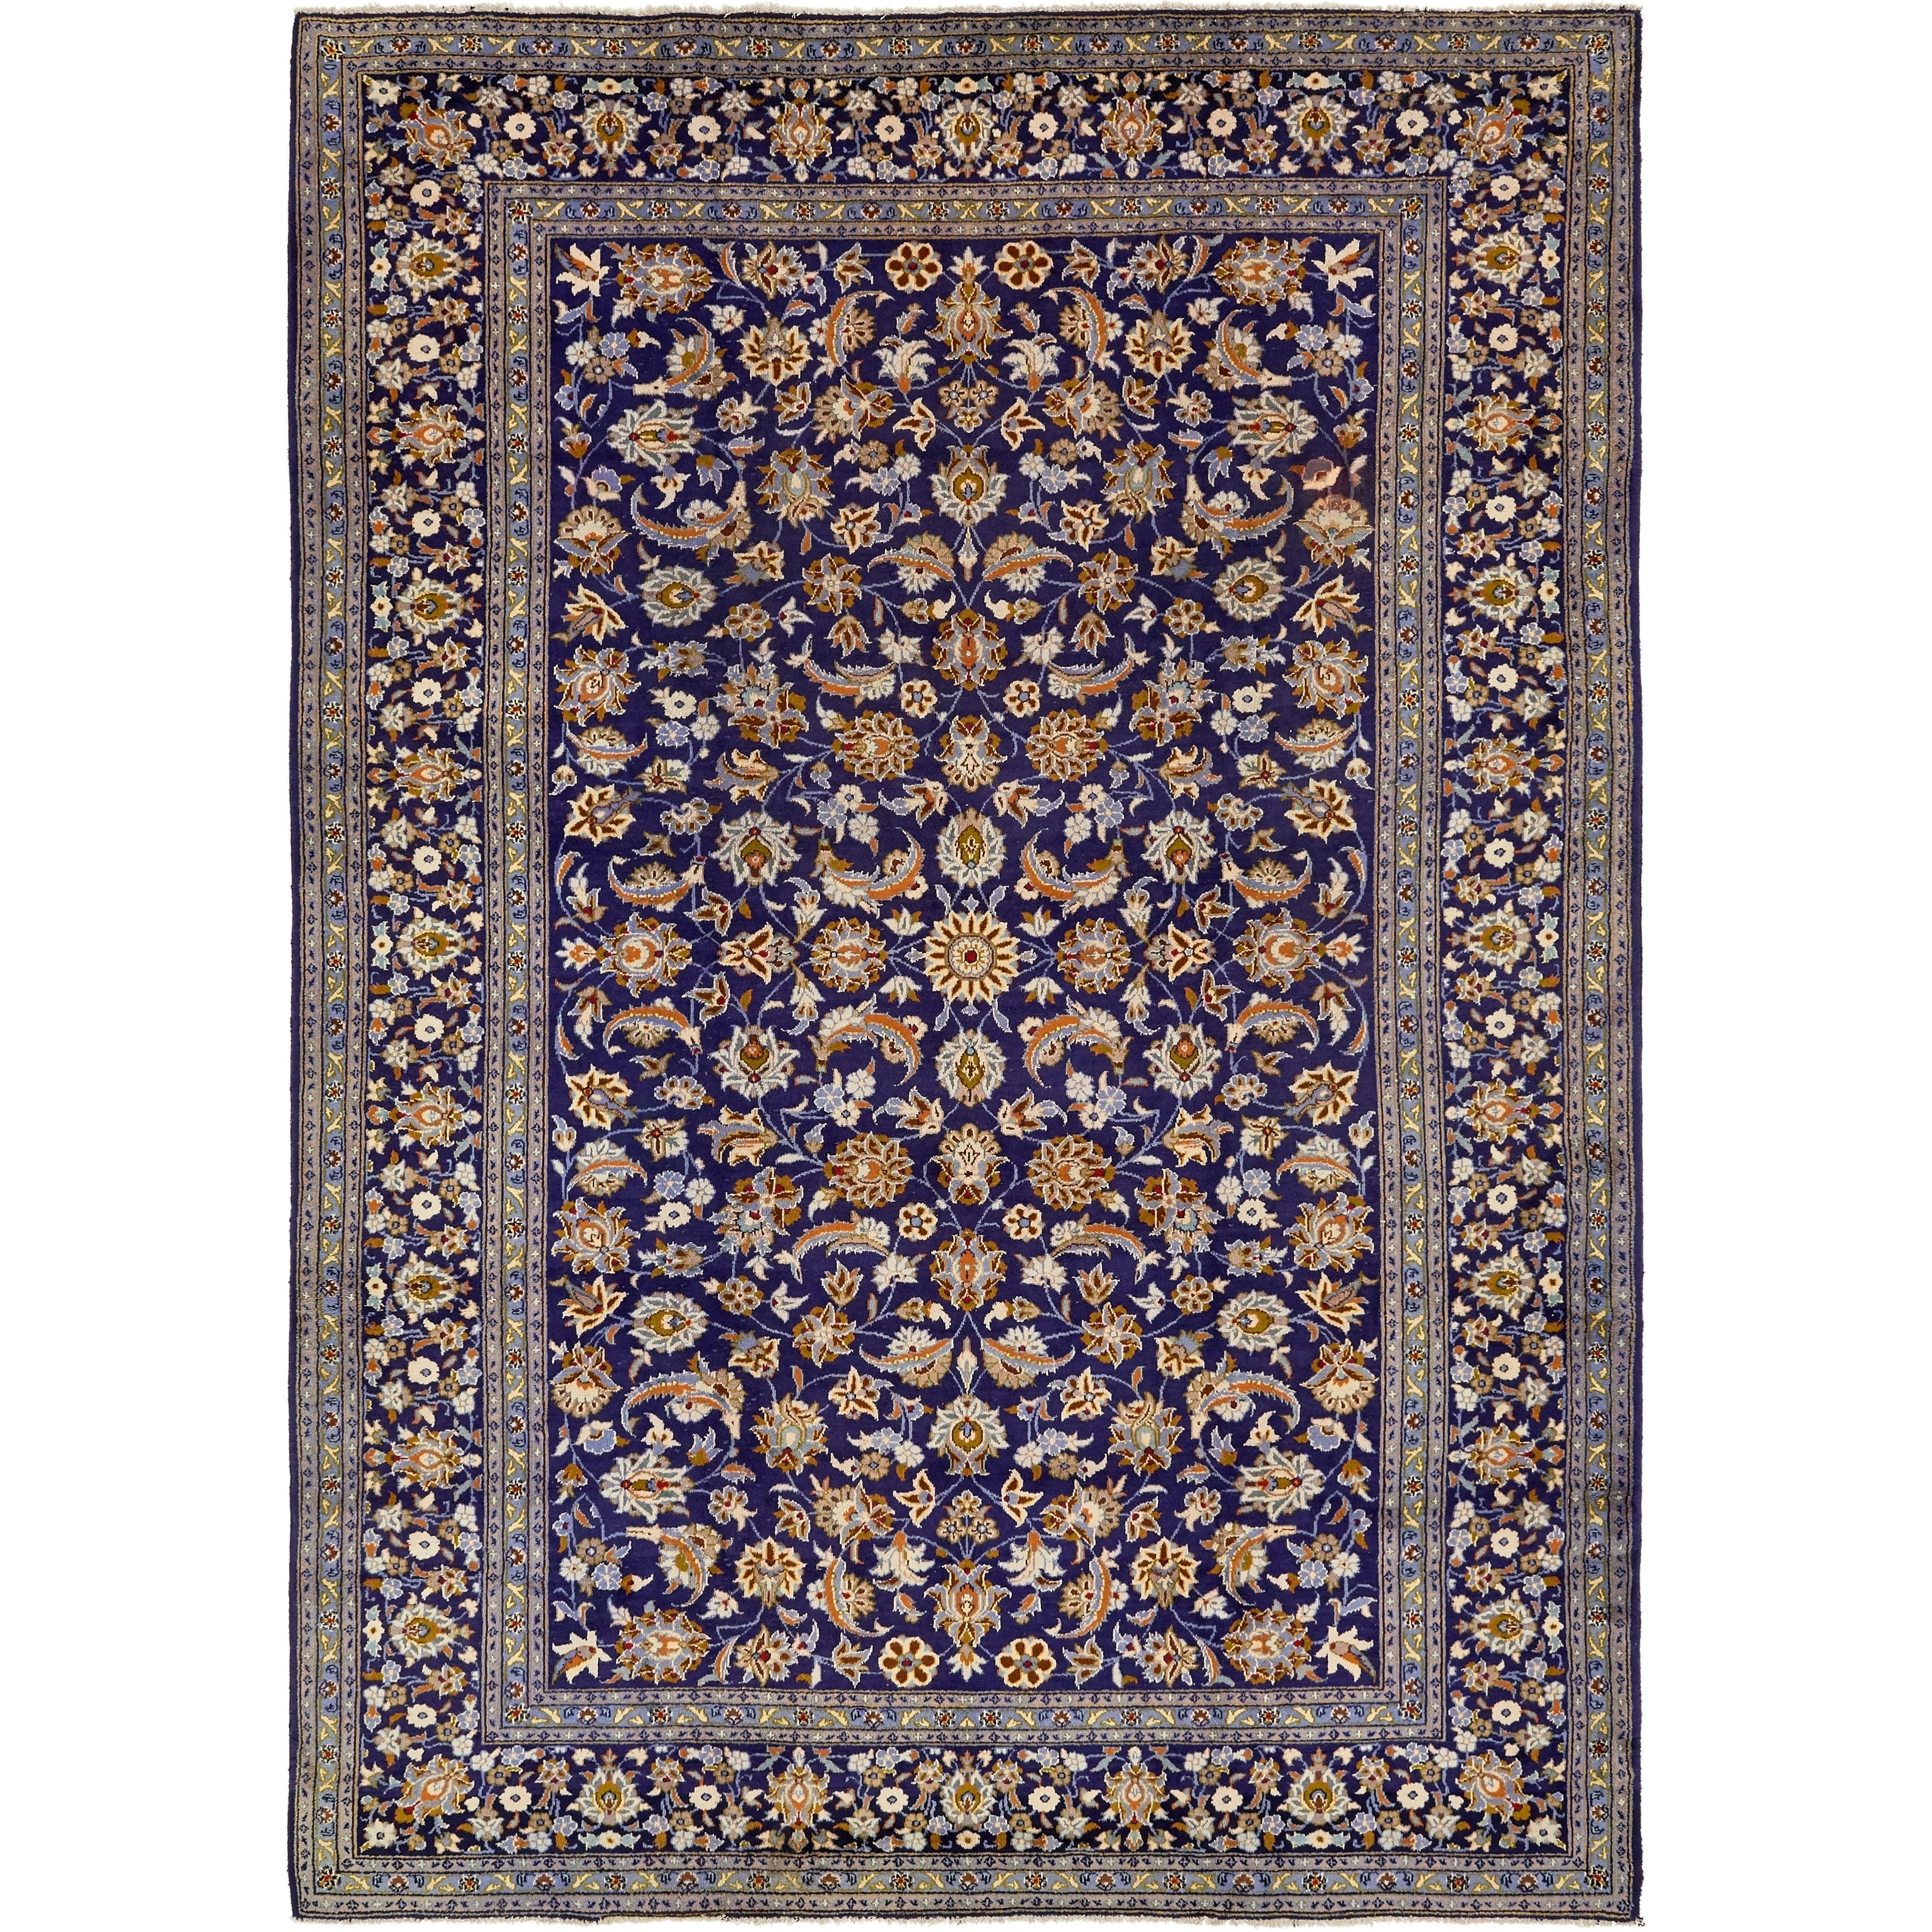 Hand Knotted Kashan Semi Antique Wool Area Rug - 8 8 x 12 5 (Navy blue - 8 8 x 12 5)